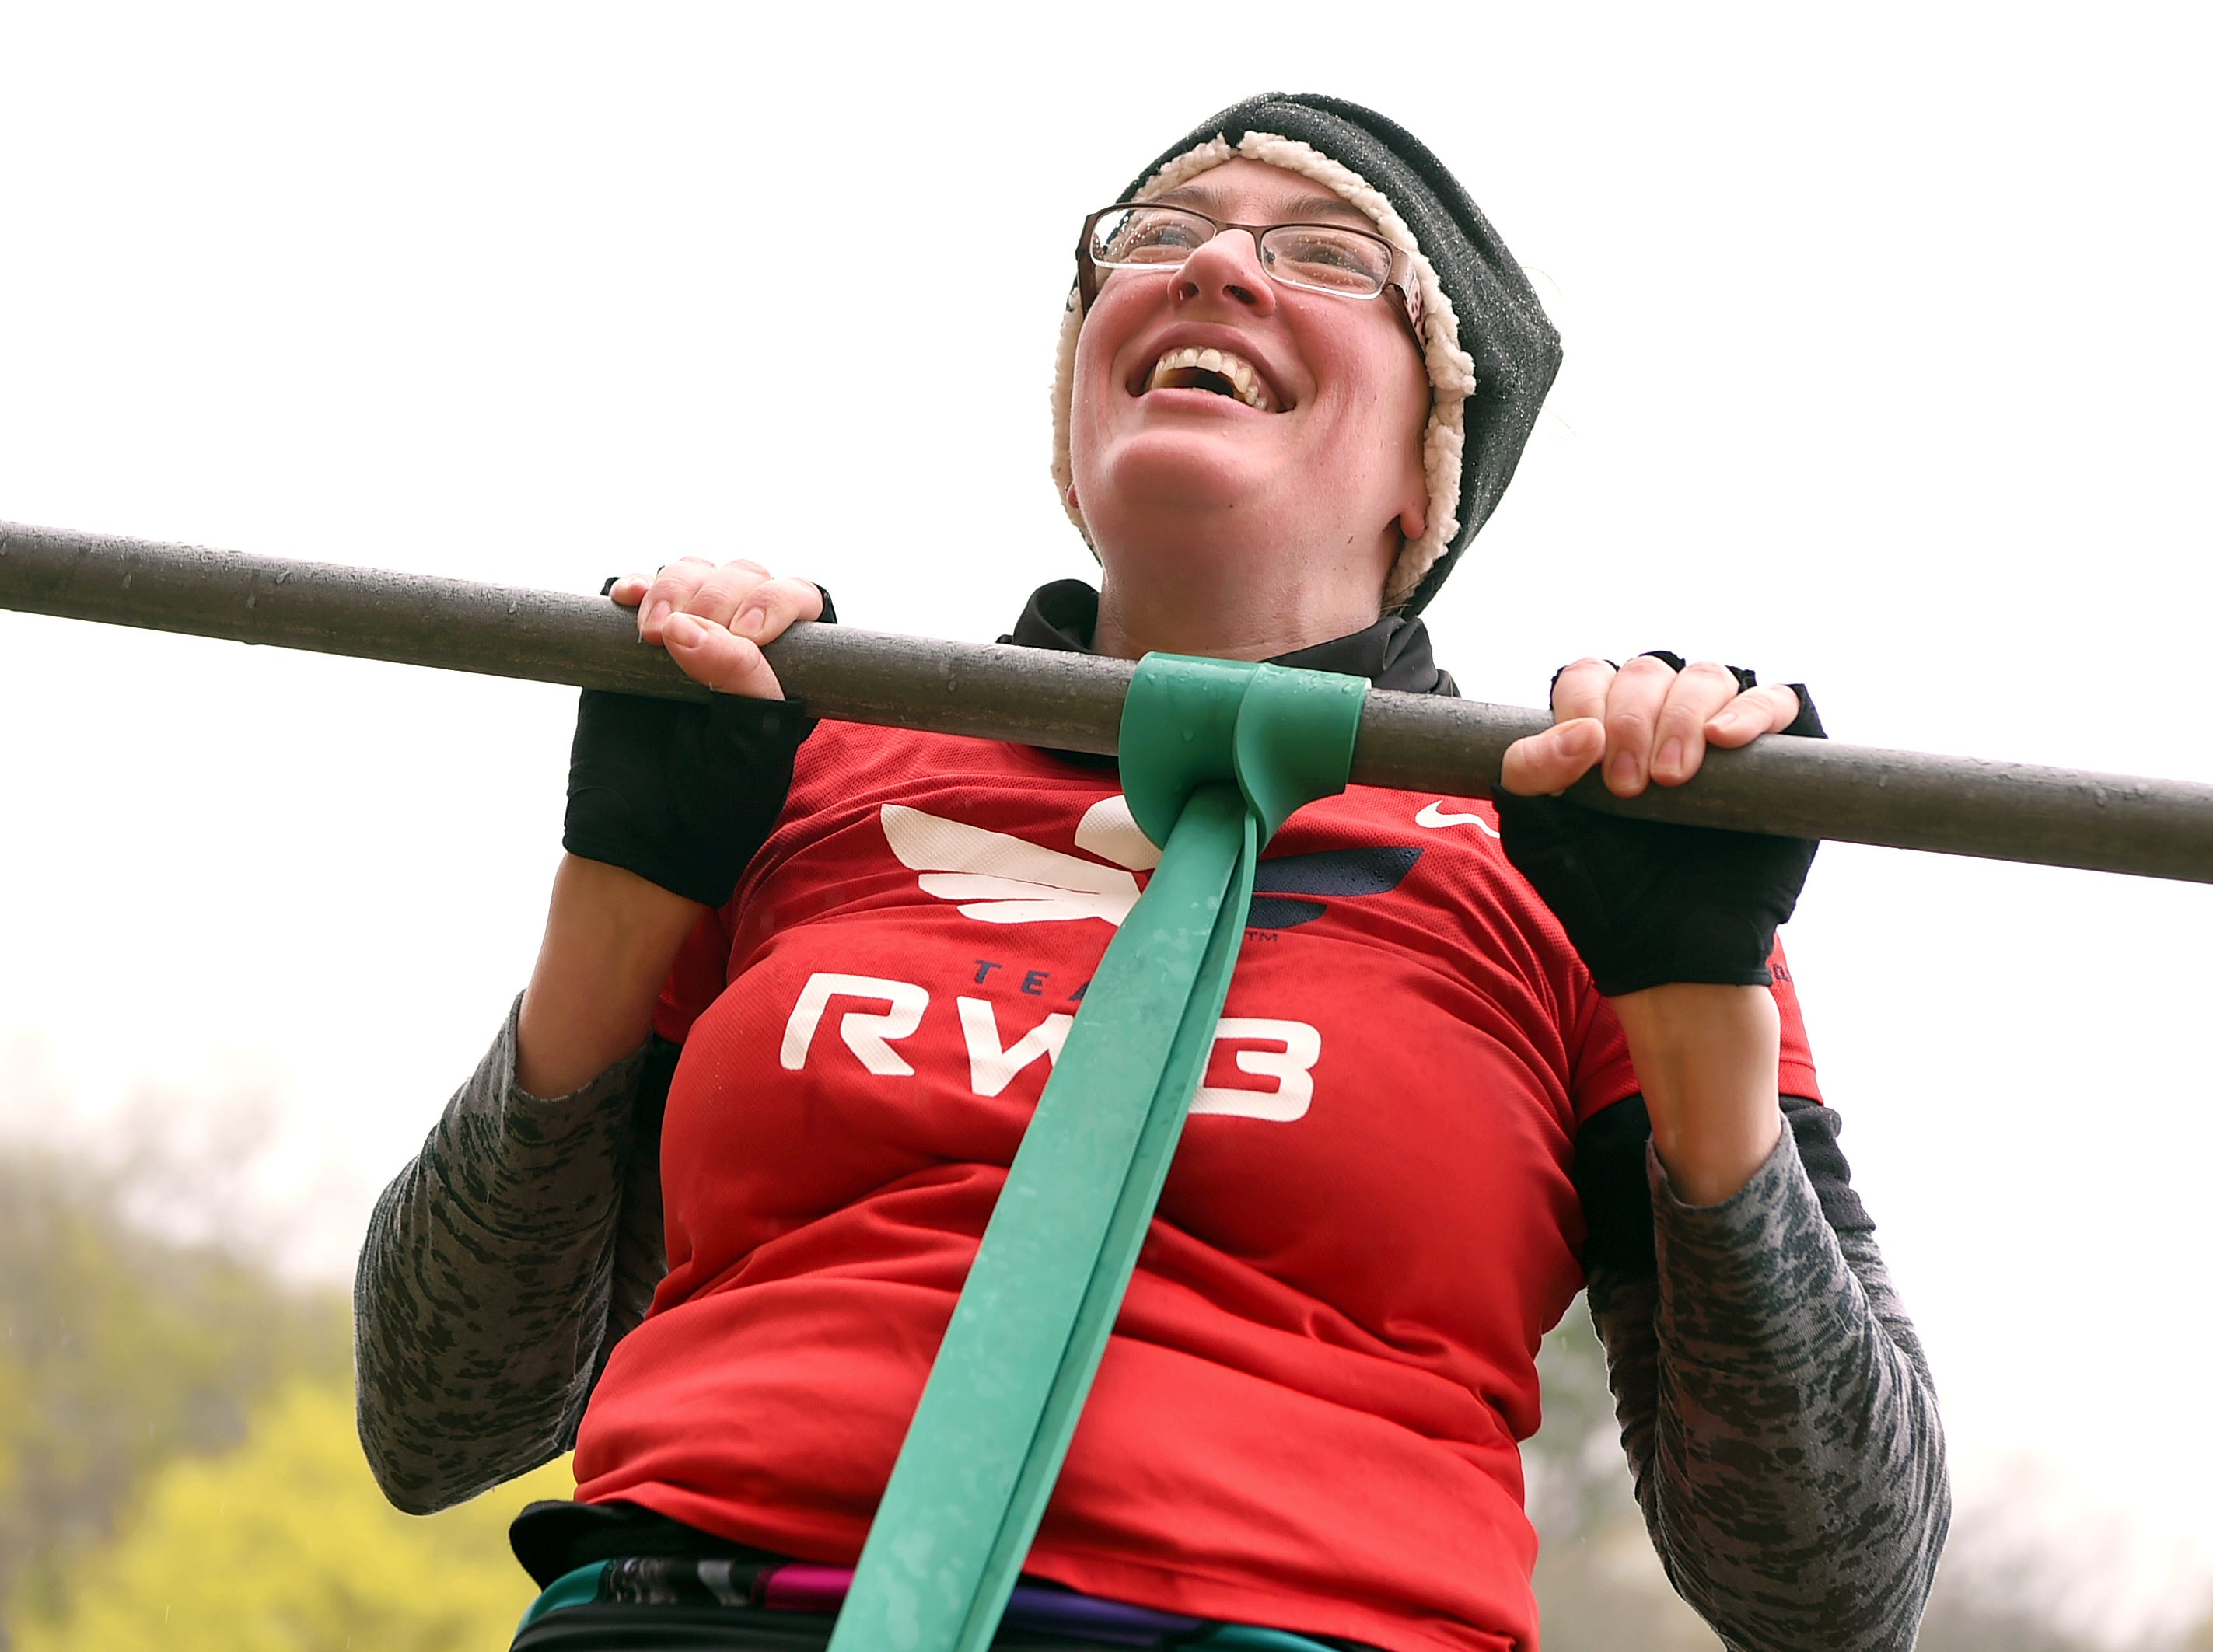 Danielle Price of Ithaca does a pull-up on the first obstacle of the Mud, Sweat and Cheers Extreme Fitness Challenge, held on Saturday, April 27, 2019 at Island Health and Fitness in Ithaca. The 5K obstacle course race is held in honor of Marine Cpl. Christopher Bordoni, an Ithaca native who died in 2012 after being wounded while conducting combat operations in Afghanistan.